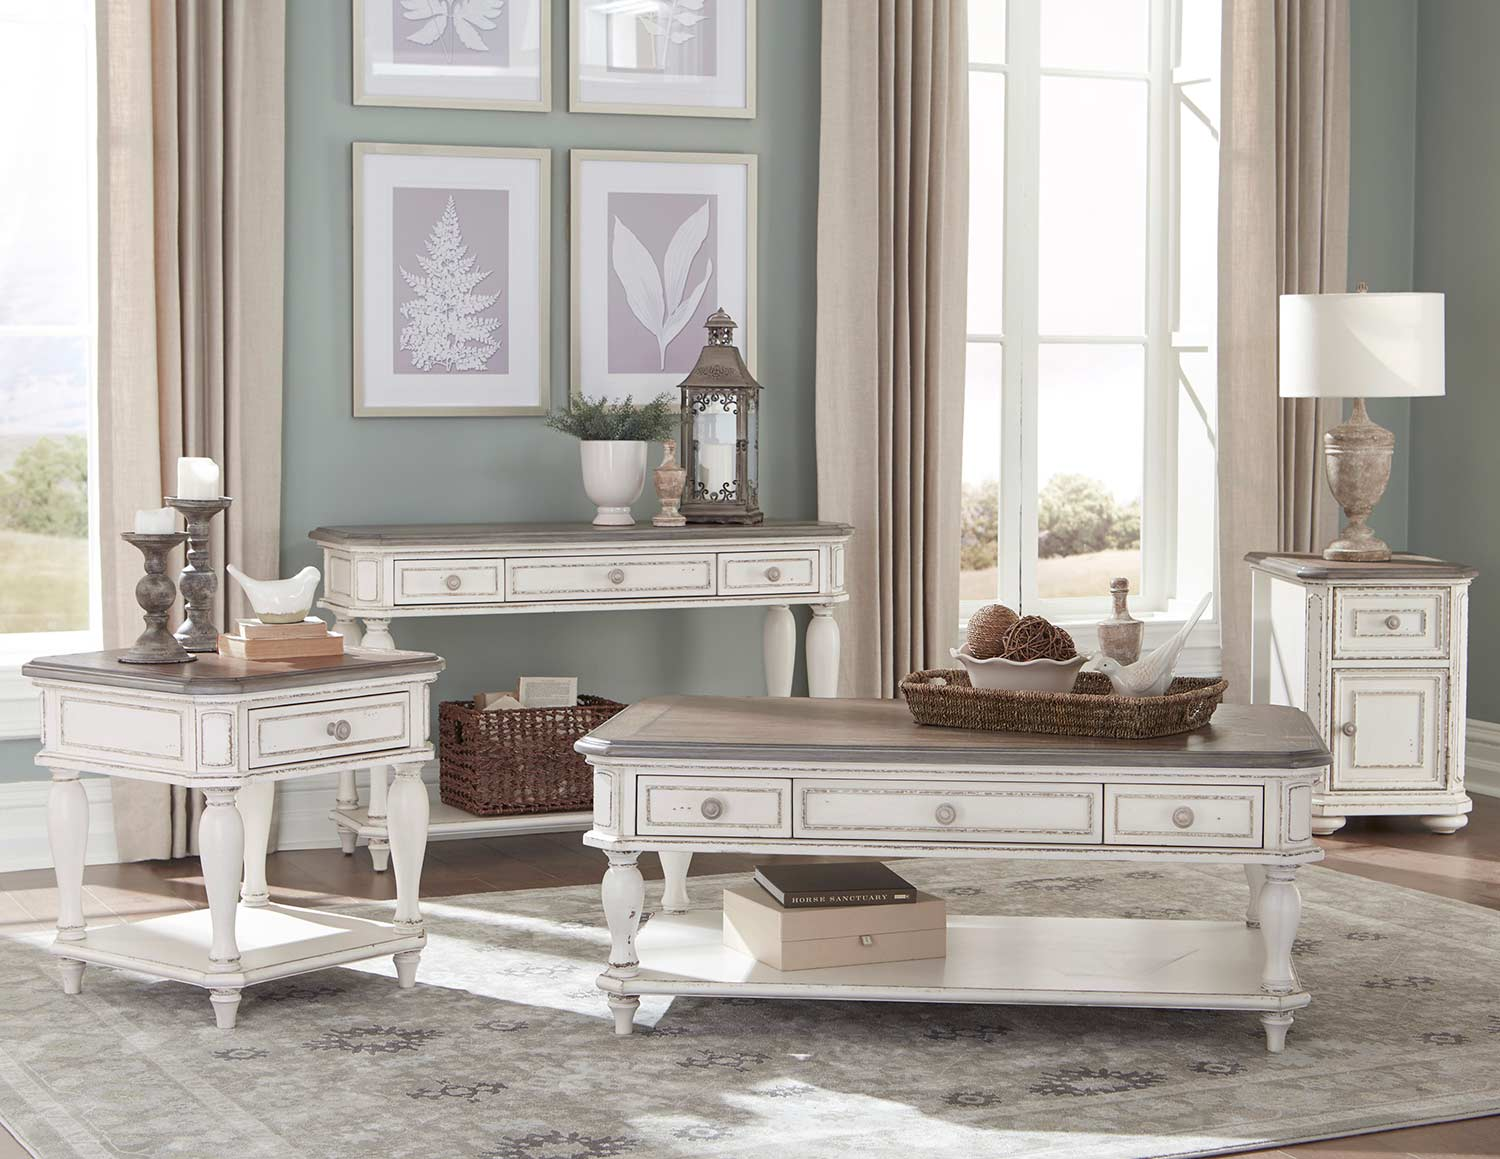 Homelegance Willowick Collection - Antique White Rub-Through/Brown Cherry Tops